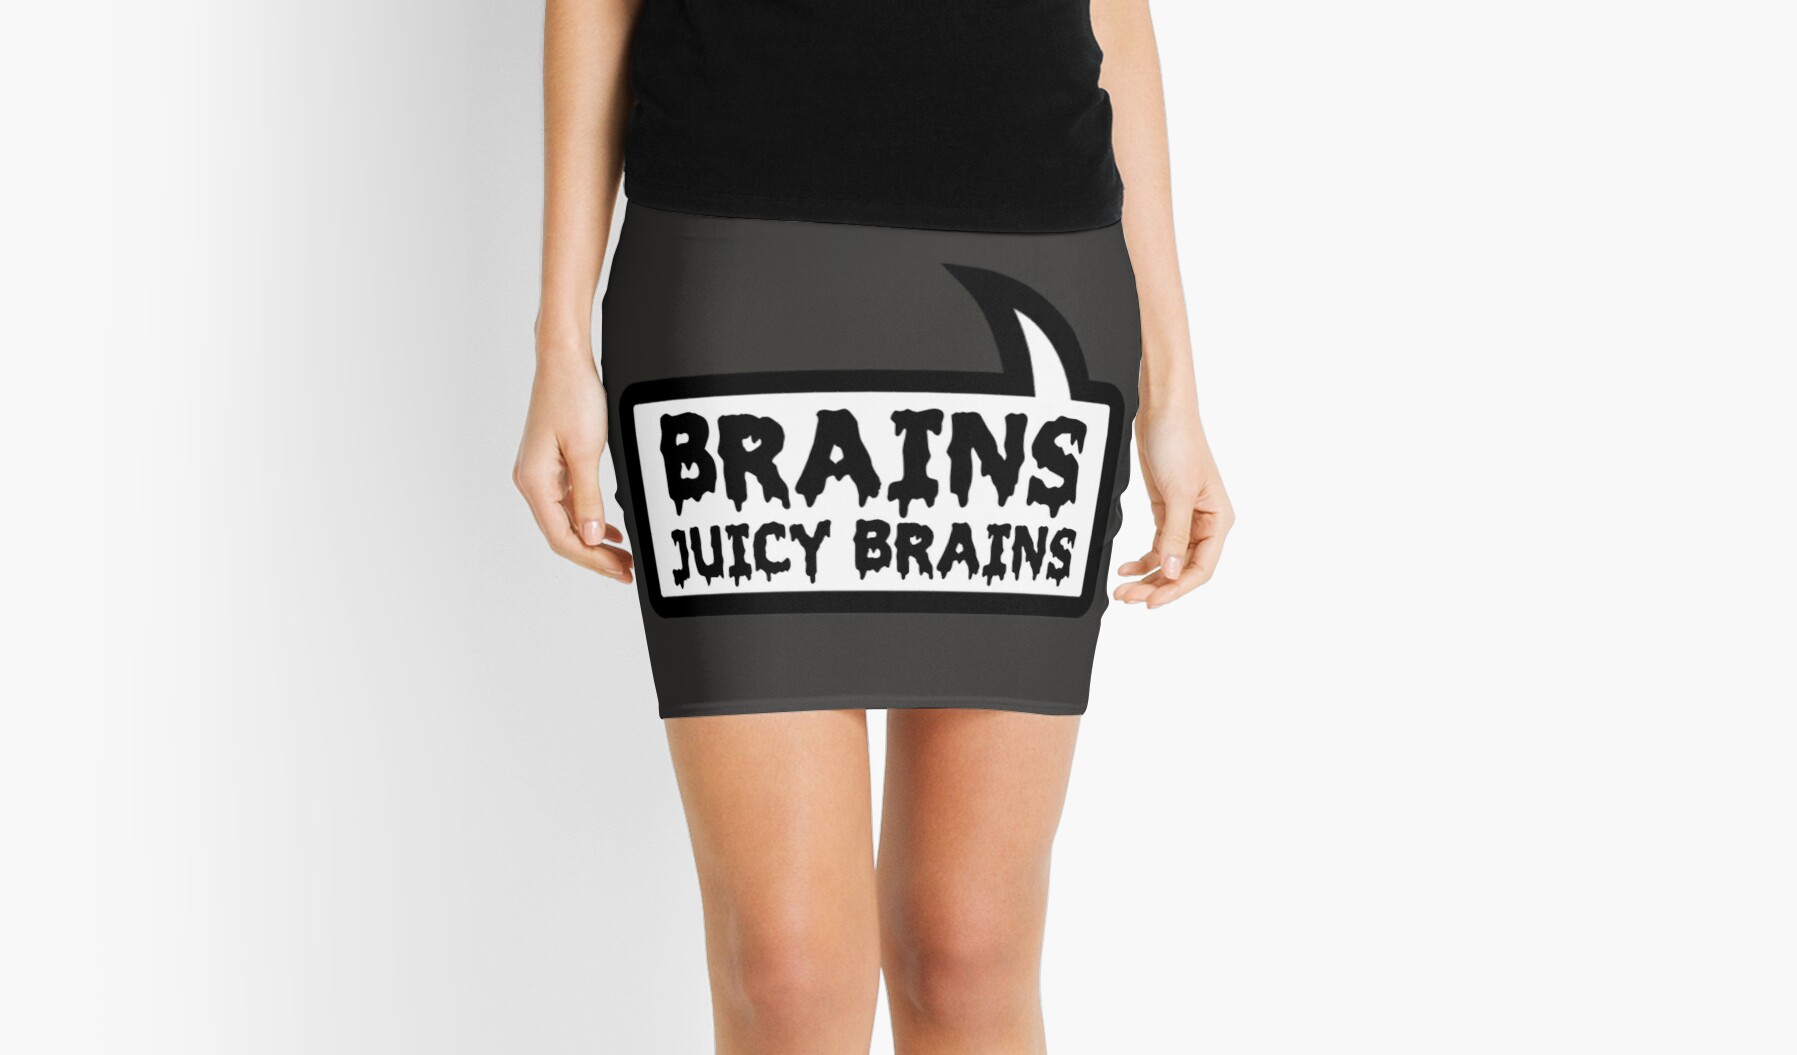 BRAINS JUICY BRAINS by Bubble-Tees.com by Bubble-Tees